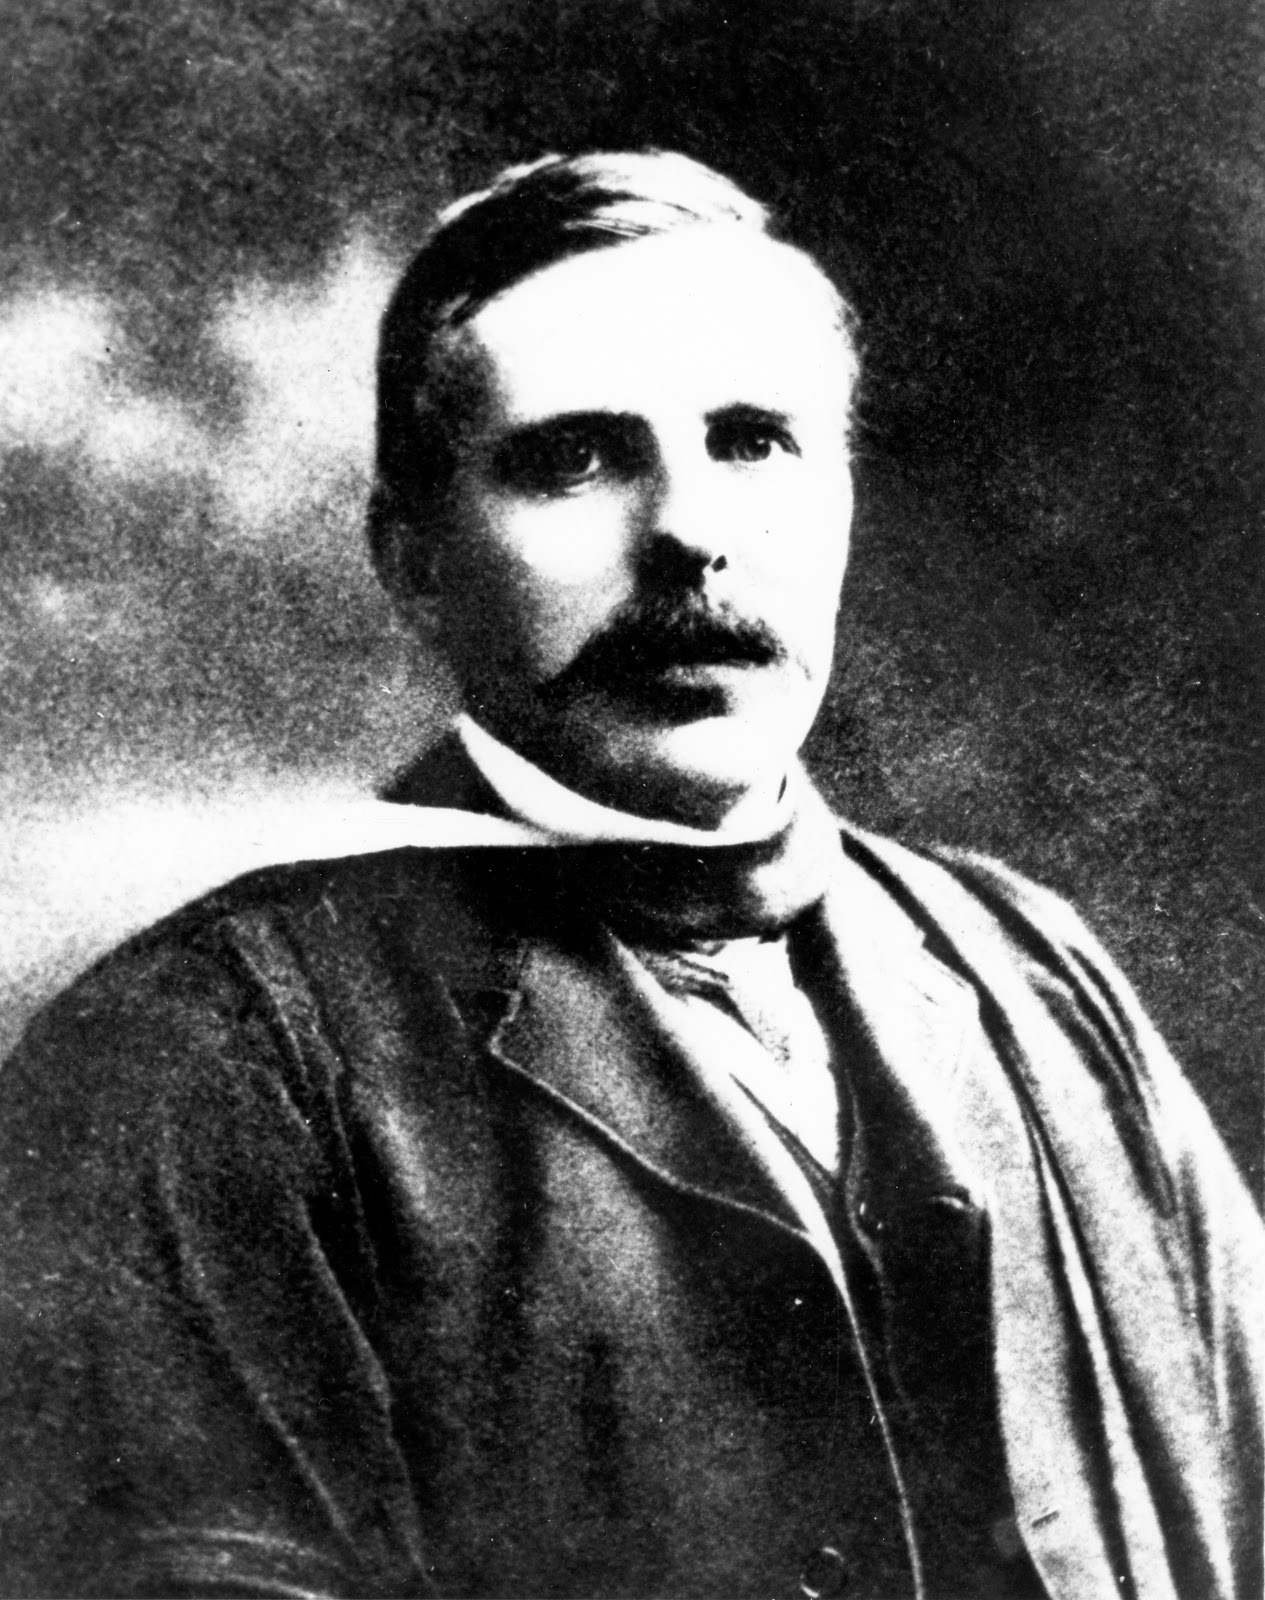 ernest rutherford Find great deals on ebay for ernest rutherford shop with confidence.